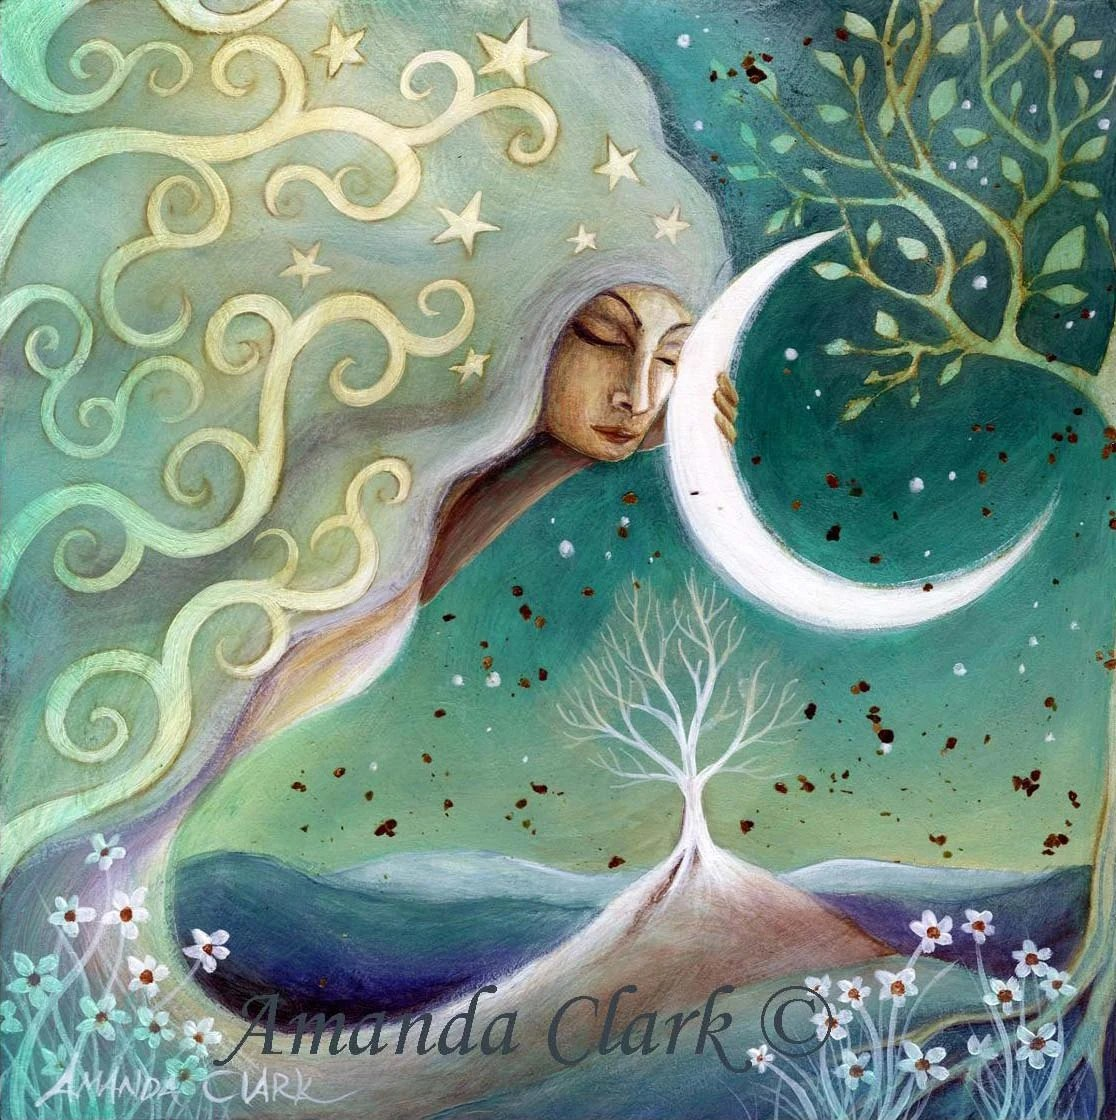 Earth and Moon art print by Amanda Clark - earthangelsarts